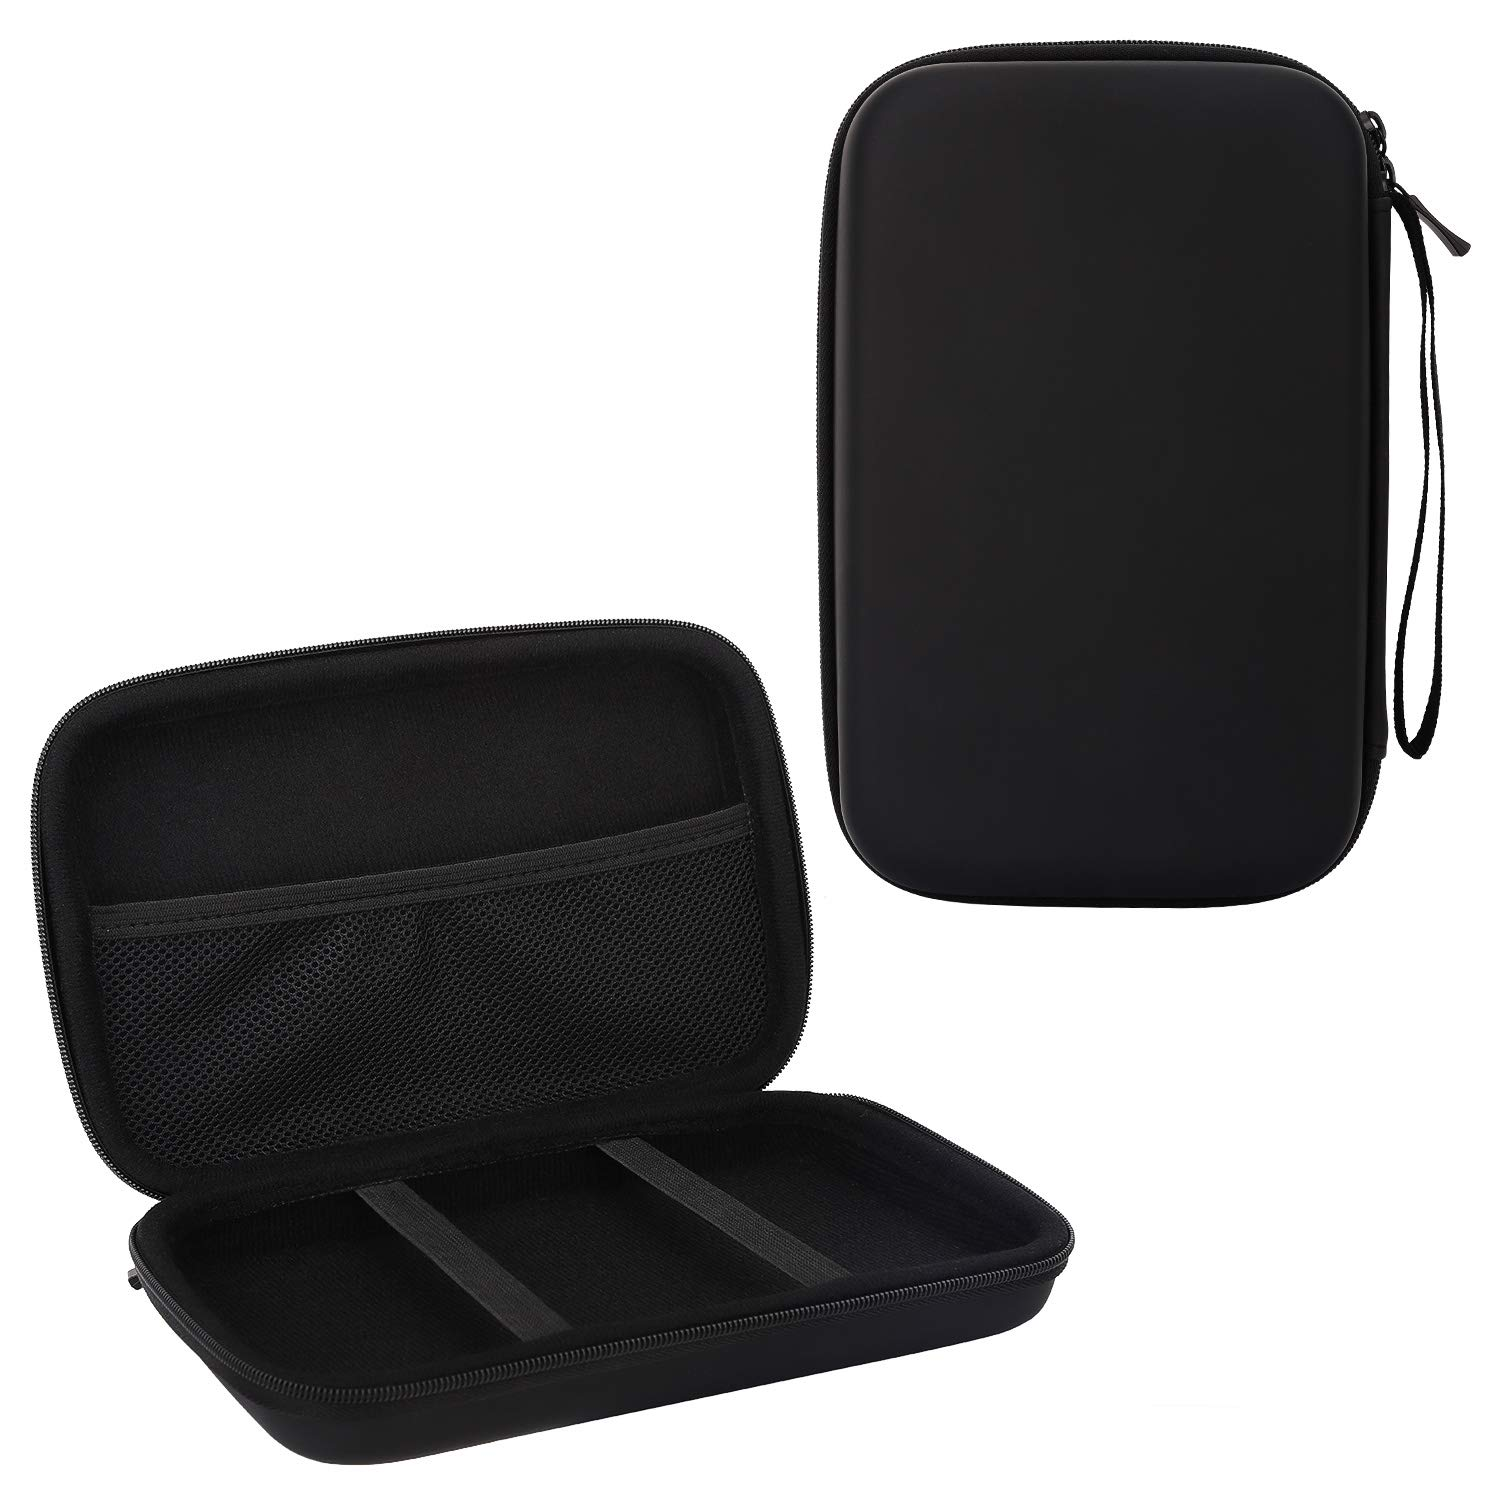 6e8ab6f176fa Details about 7-Inch GPS Carrying Case Shockproof EVA Hard Shell Protective  Pouch Travel Bag